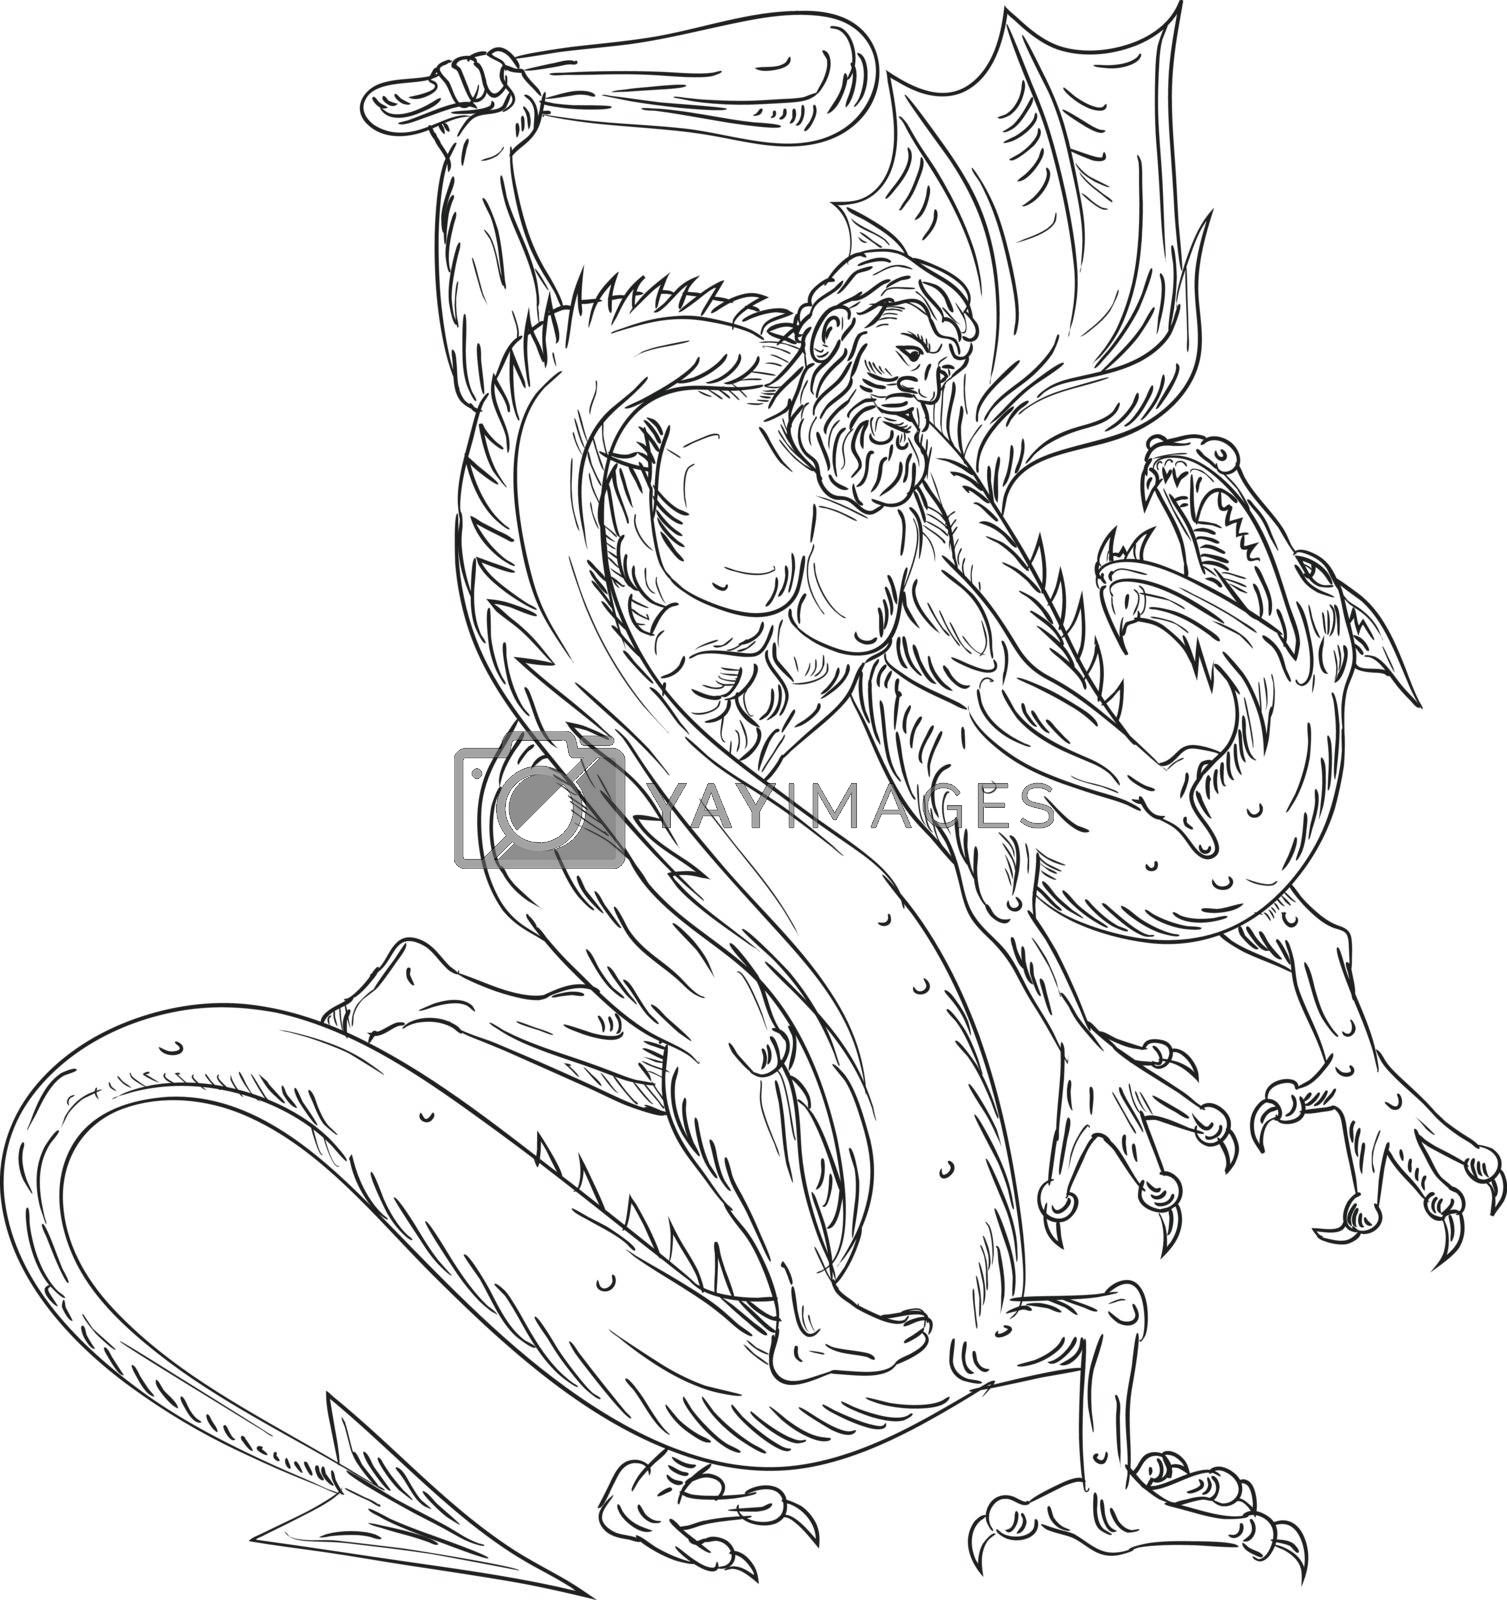 Hercules Grappling Dragon Drawing Black and White by patrimonio